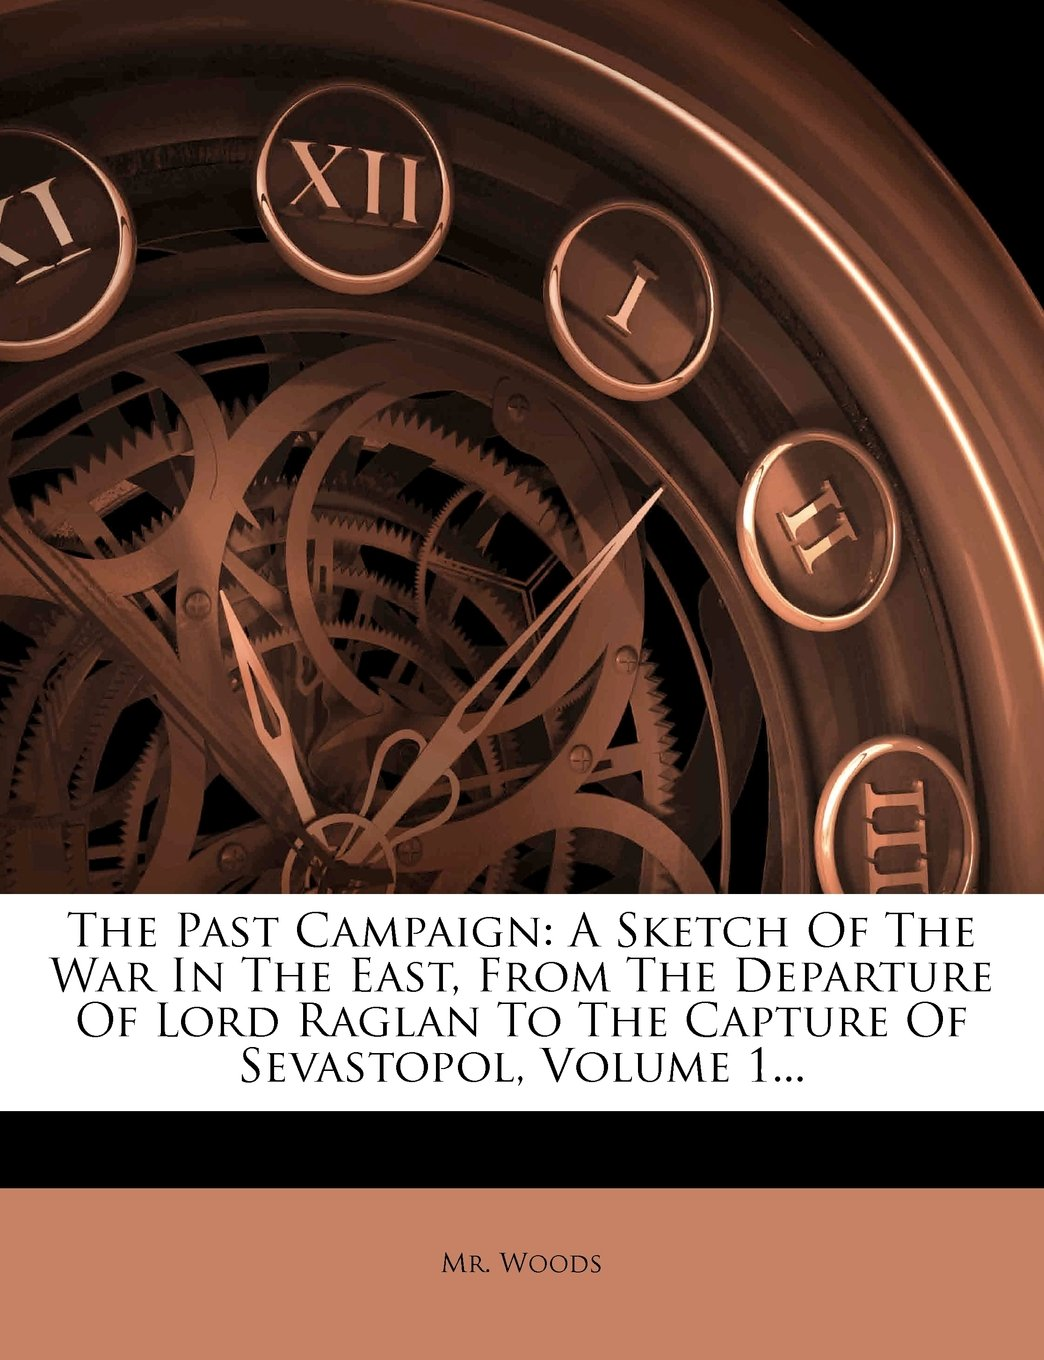 Download The Past Campaign: A Sketch Of The War In The East, From The Departure Of Lord Raglan To The Capture Of Sevastopol, Volume 1... PDF